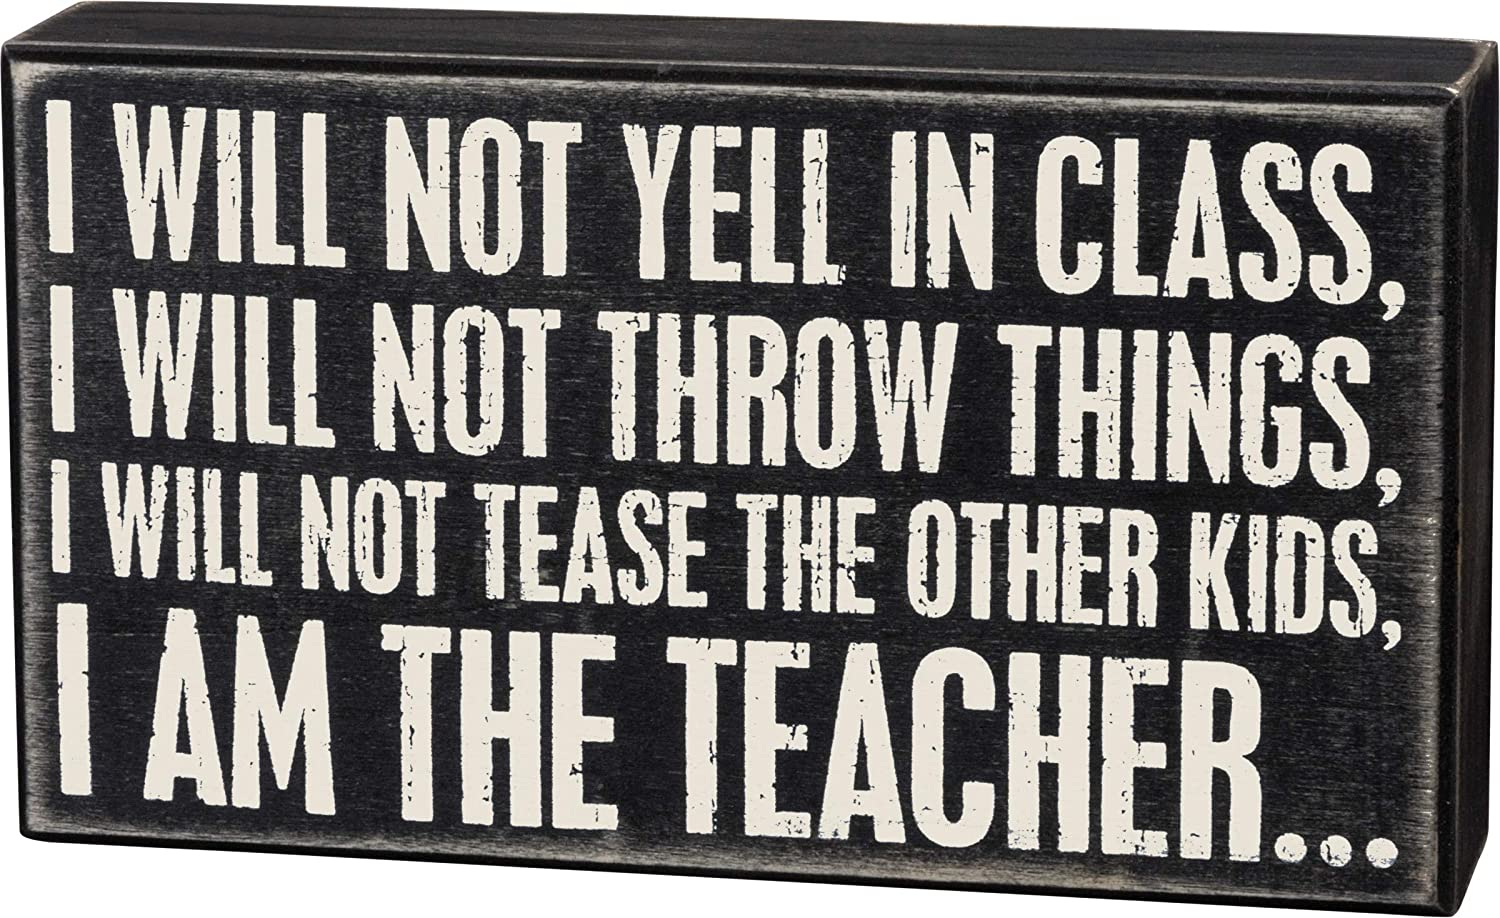 Primitives by Kathy 18918 Classic Box Sign, 8 x 4.5-Inches, I Will Not Yell in Class